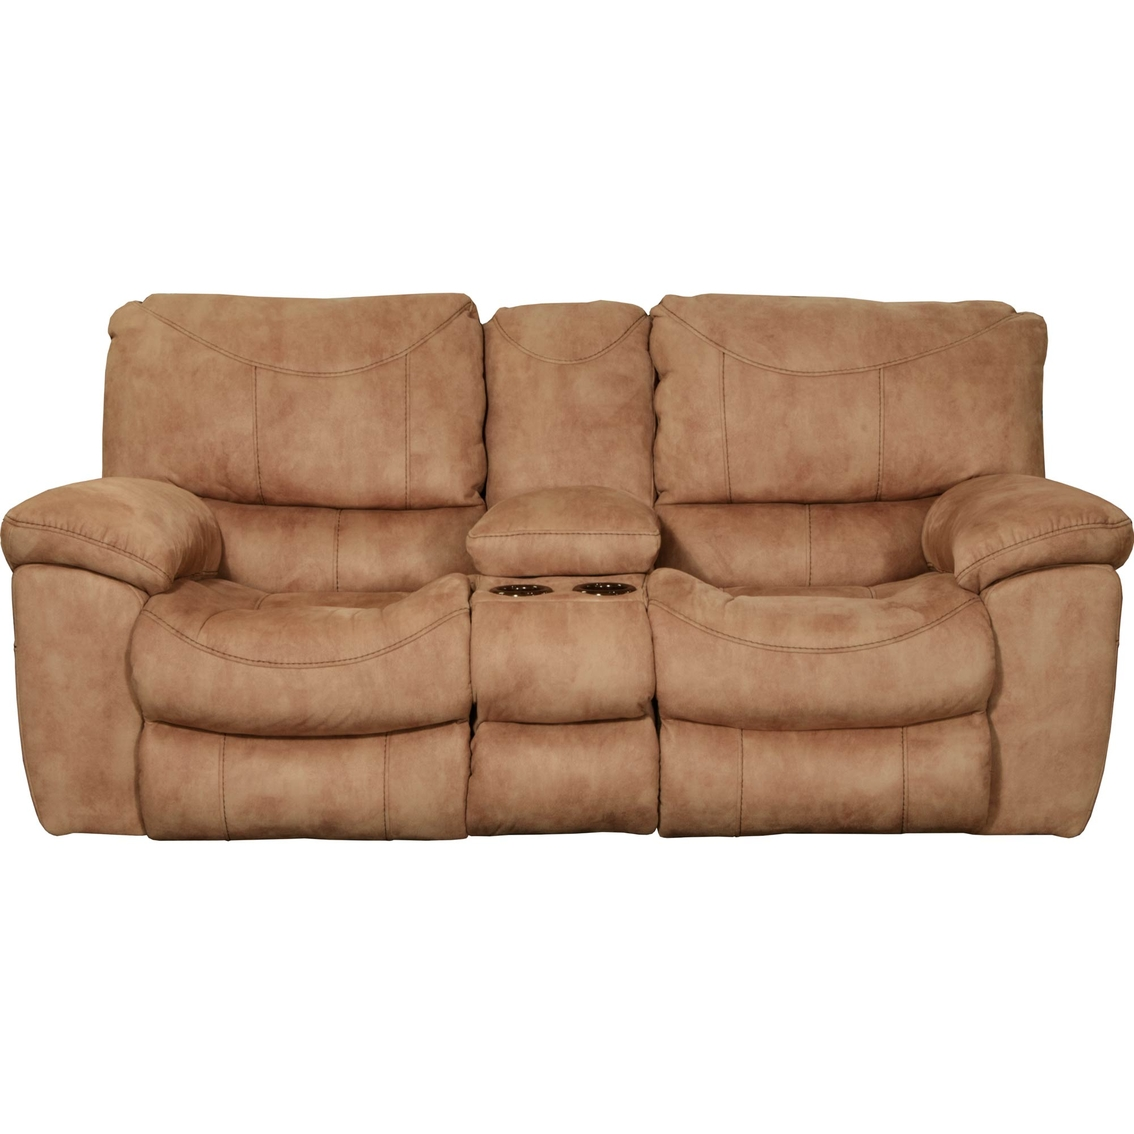 Catnapper Terrance Reclining Console Loveseat Sofas Couches Home Appliances Shop The